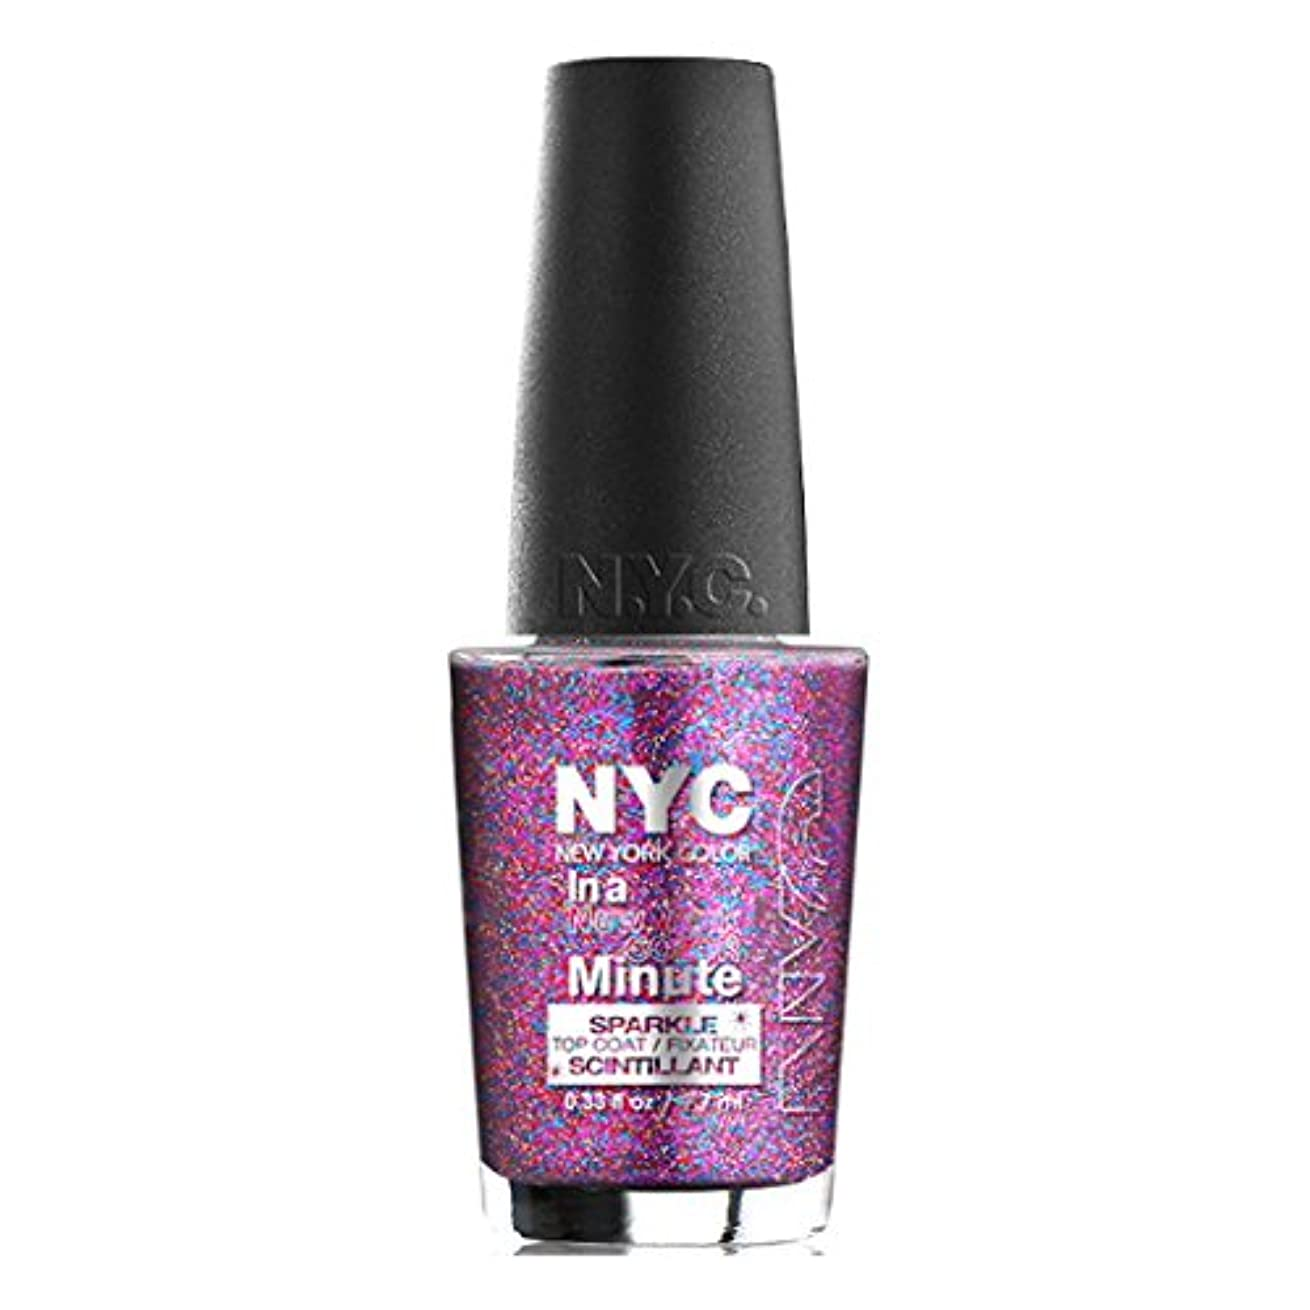 無意識マーキング幸福(3 Pack) NYC In A New York Color Minute Sparkle Top Coat - Big City Dazzle (並行輸入品)